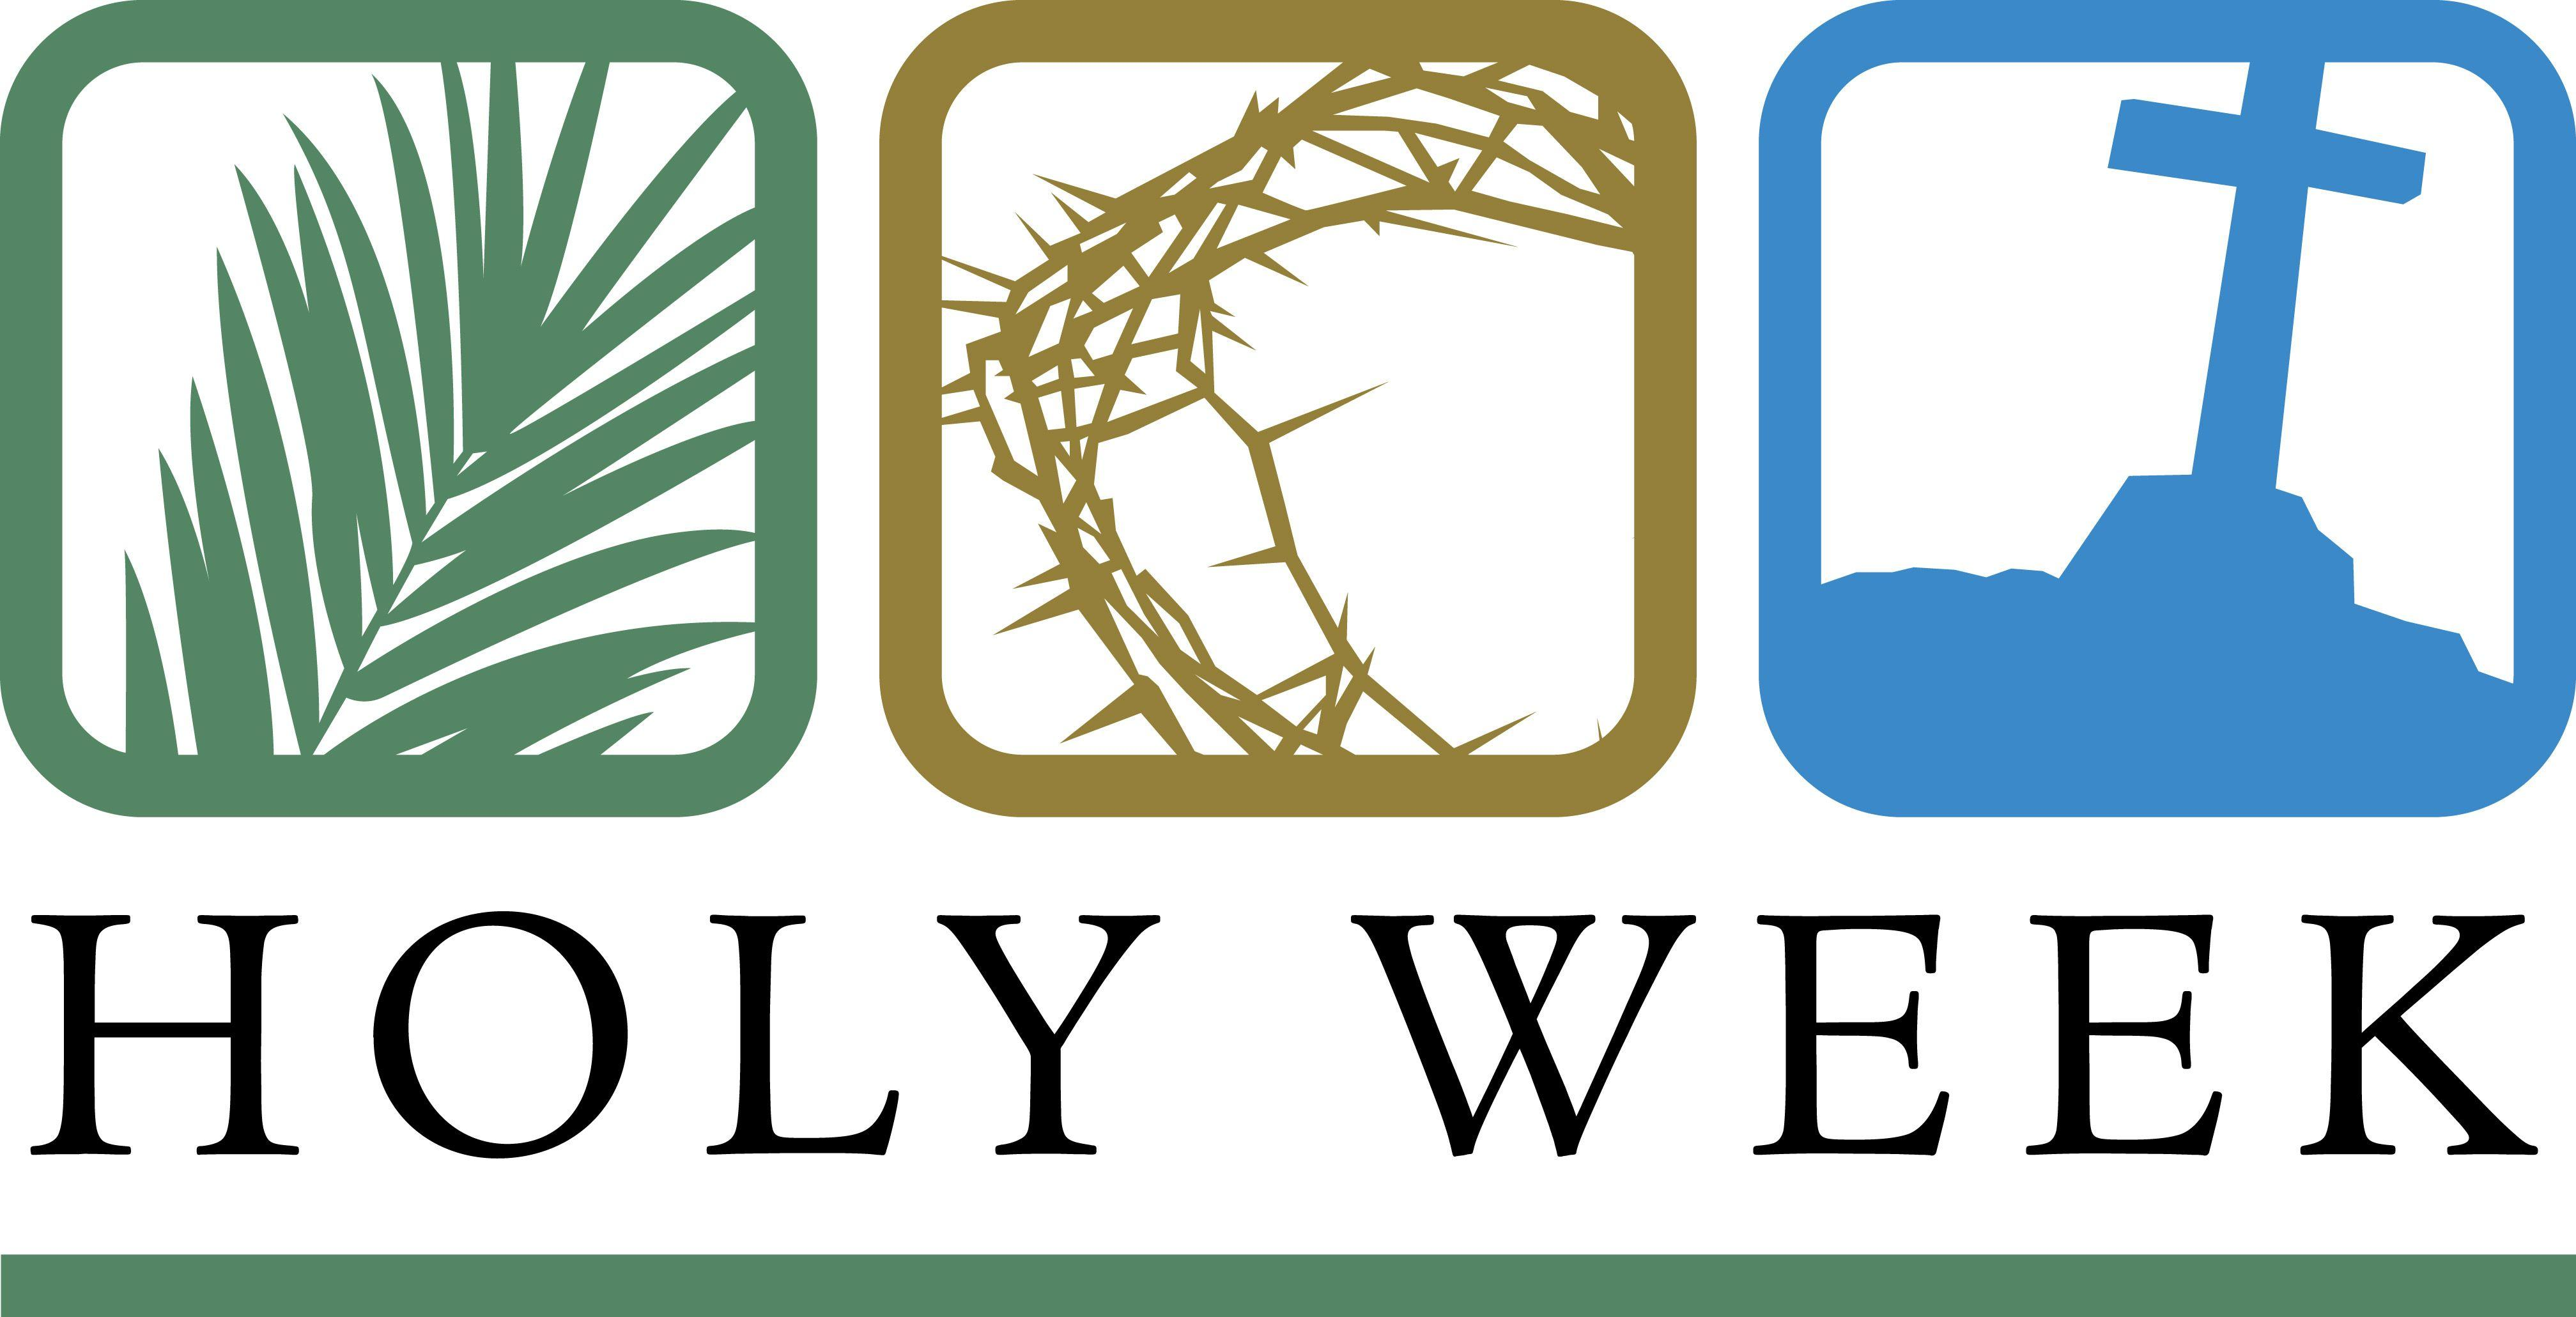 Maundy thursday clipart collection